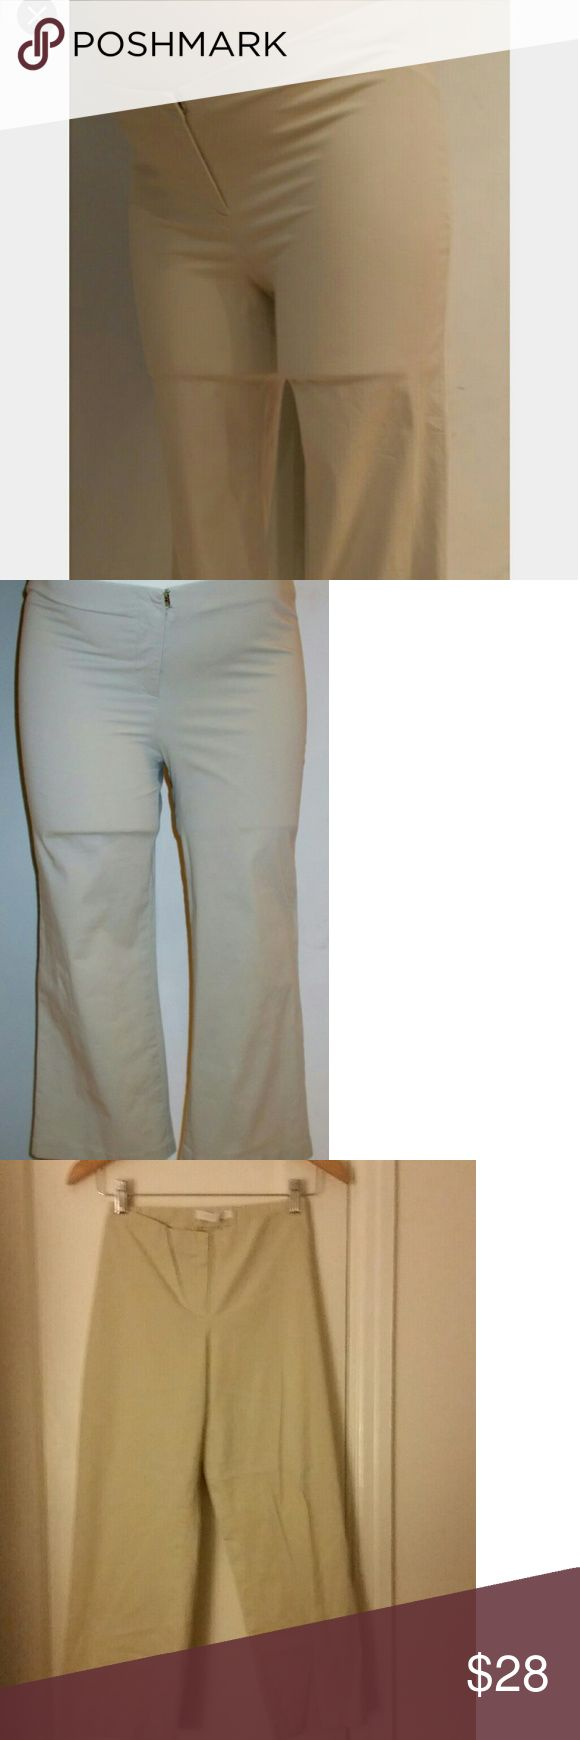 Chaiken Maternity Khaki Cropped Capri Pants M Lightweight, summery, cute khaki cropped pants from Chaiken!  One of the world's leading designers in fine ladies wear developed a maternity line with beautiful fit and comfort to boot!   The fabric is light and will be super comfortable during the hot days ahead. Wear them into fall too. They feature a button and elastic adjustable waistband and can be worn post pregnancy. Slightly fitted through leg and then a relaxed fit on leg opening. Super…